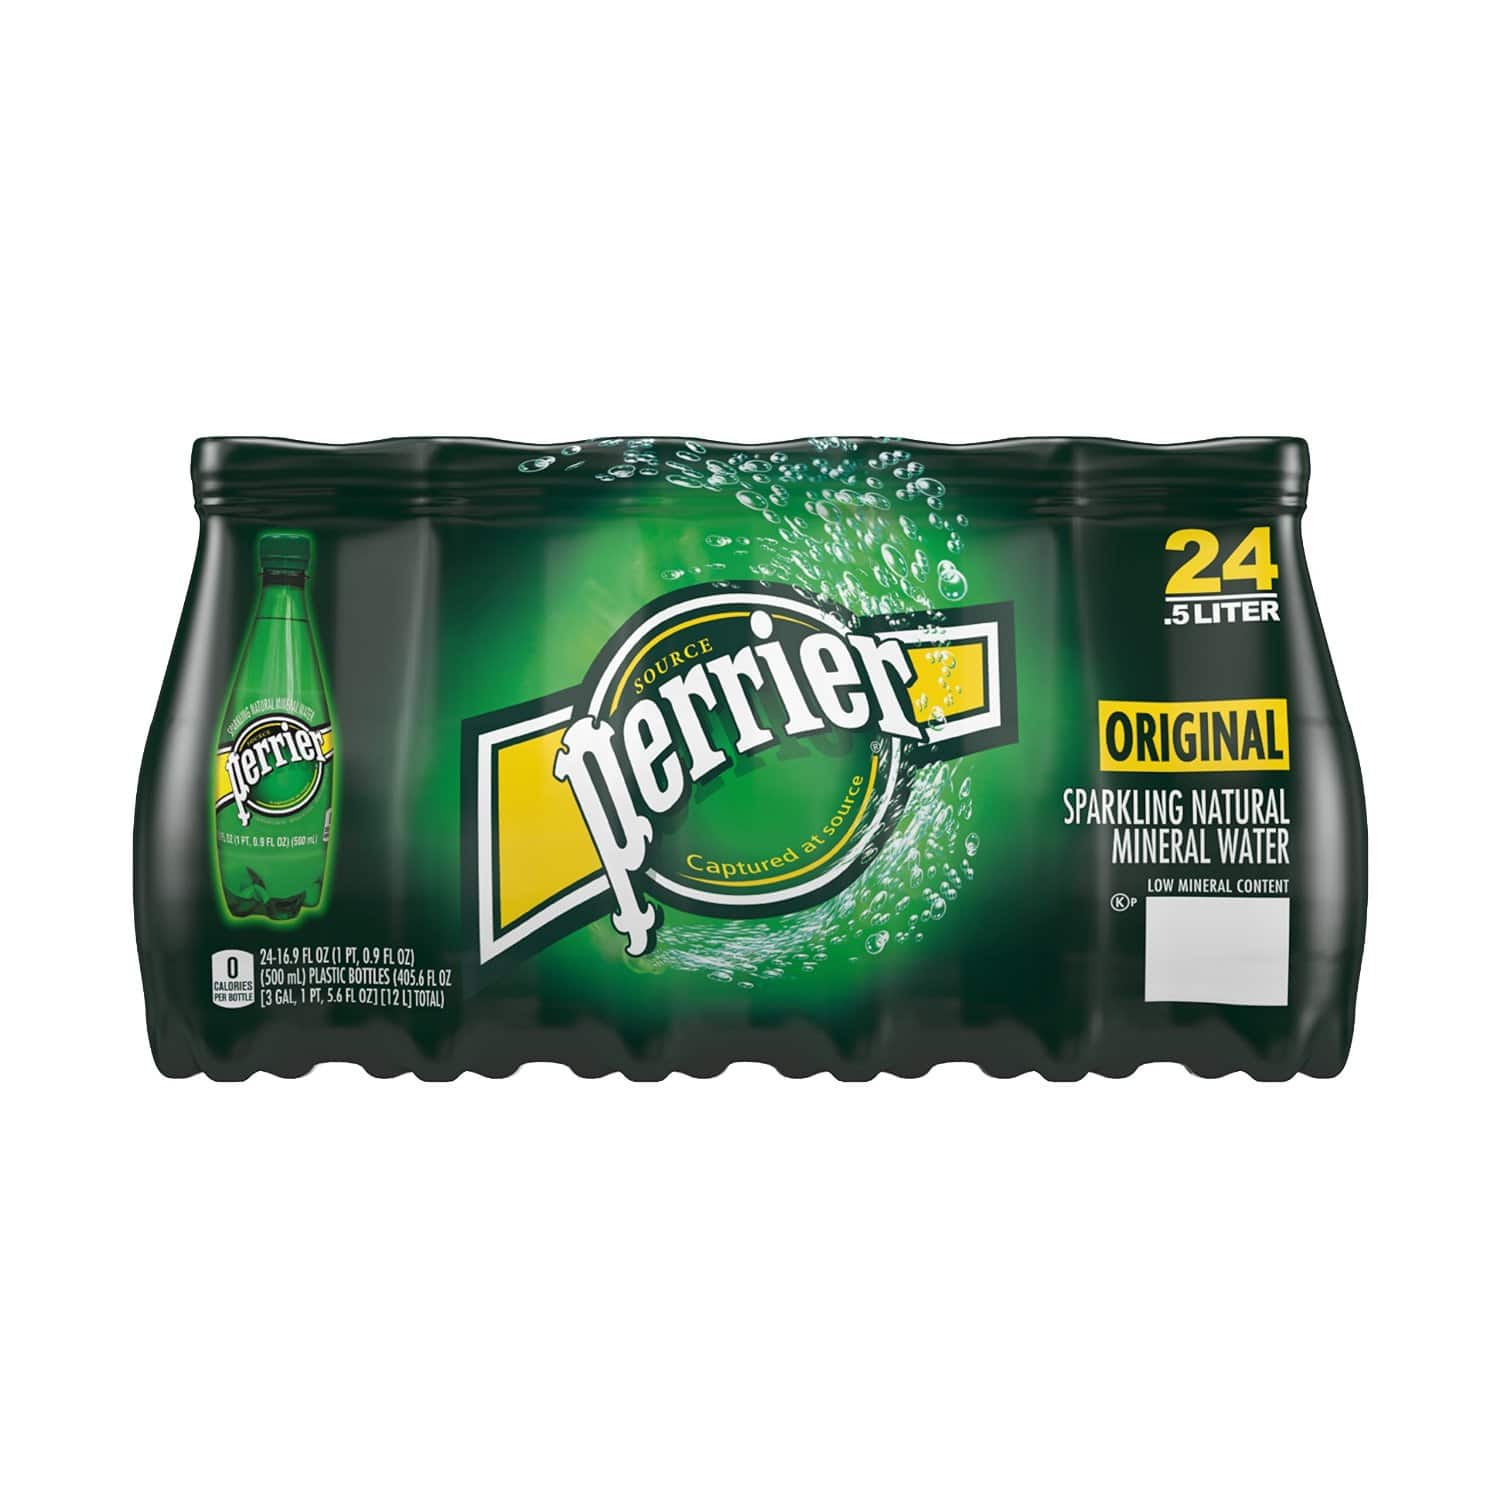 24-Pack of 16.9oz Perrier Sparkling Natural Mineral Water  $15.50 + Free Shipping